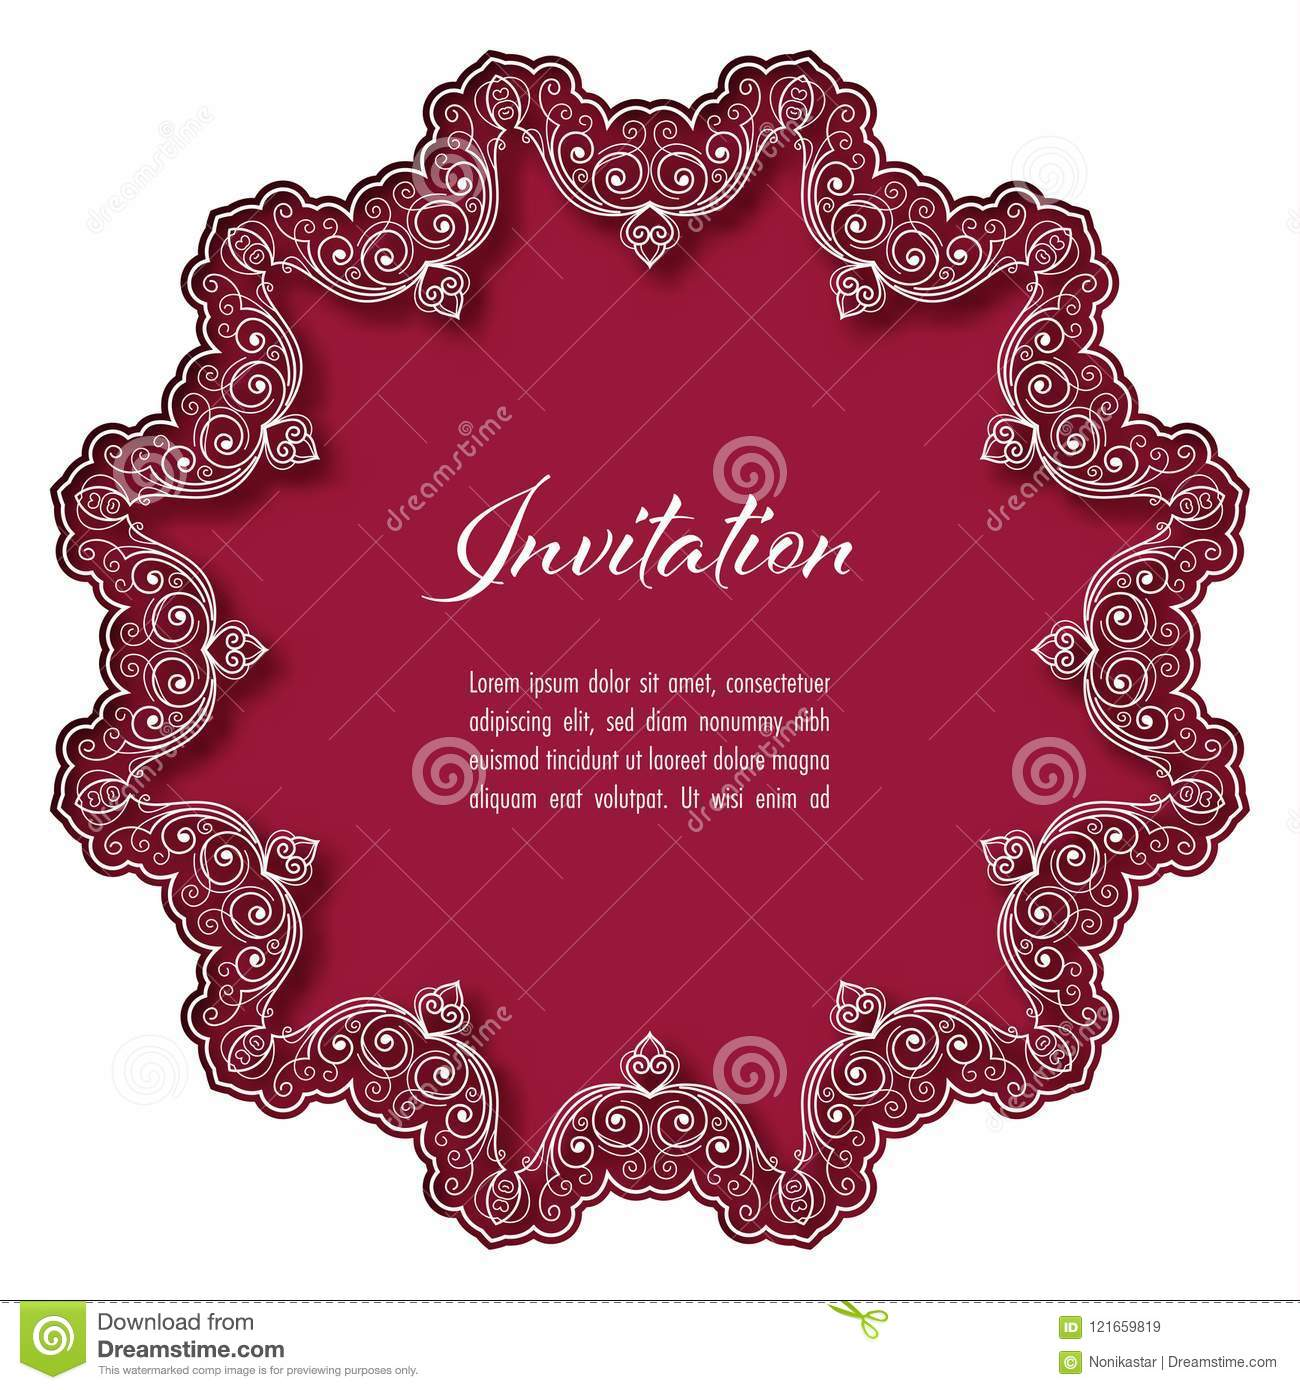 Perfect Real Lace Wedding Invitations Ideas - Invitations and ...